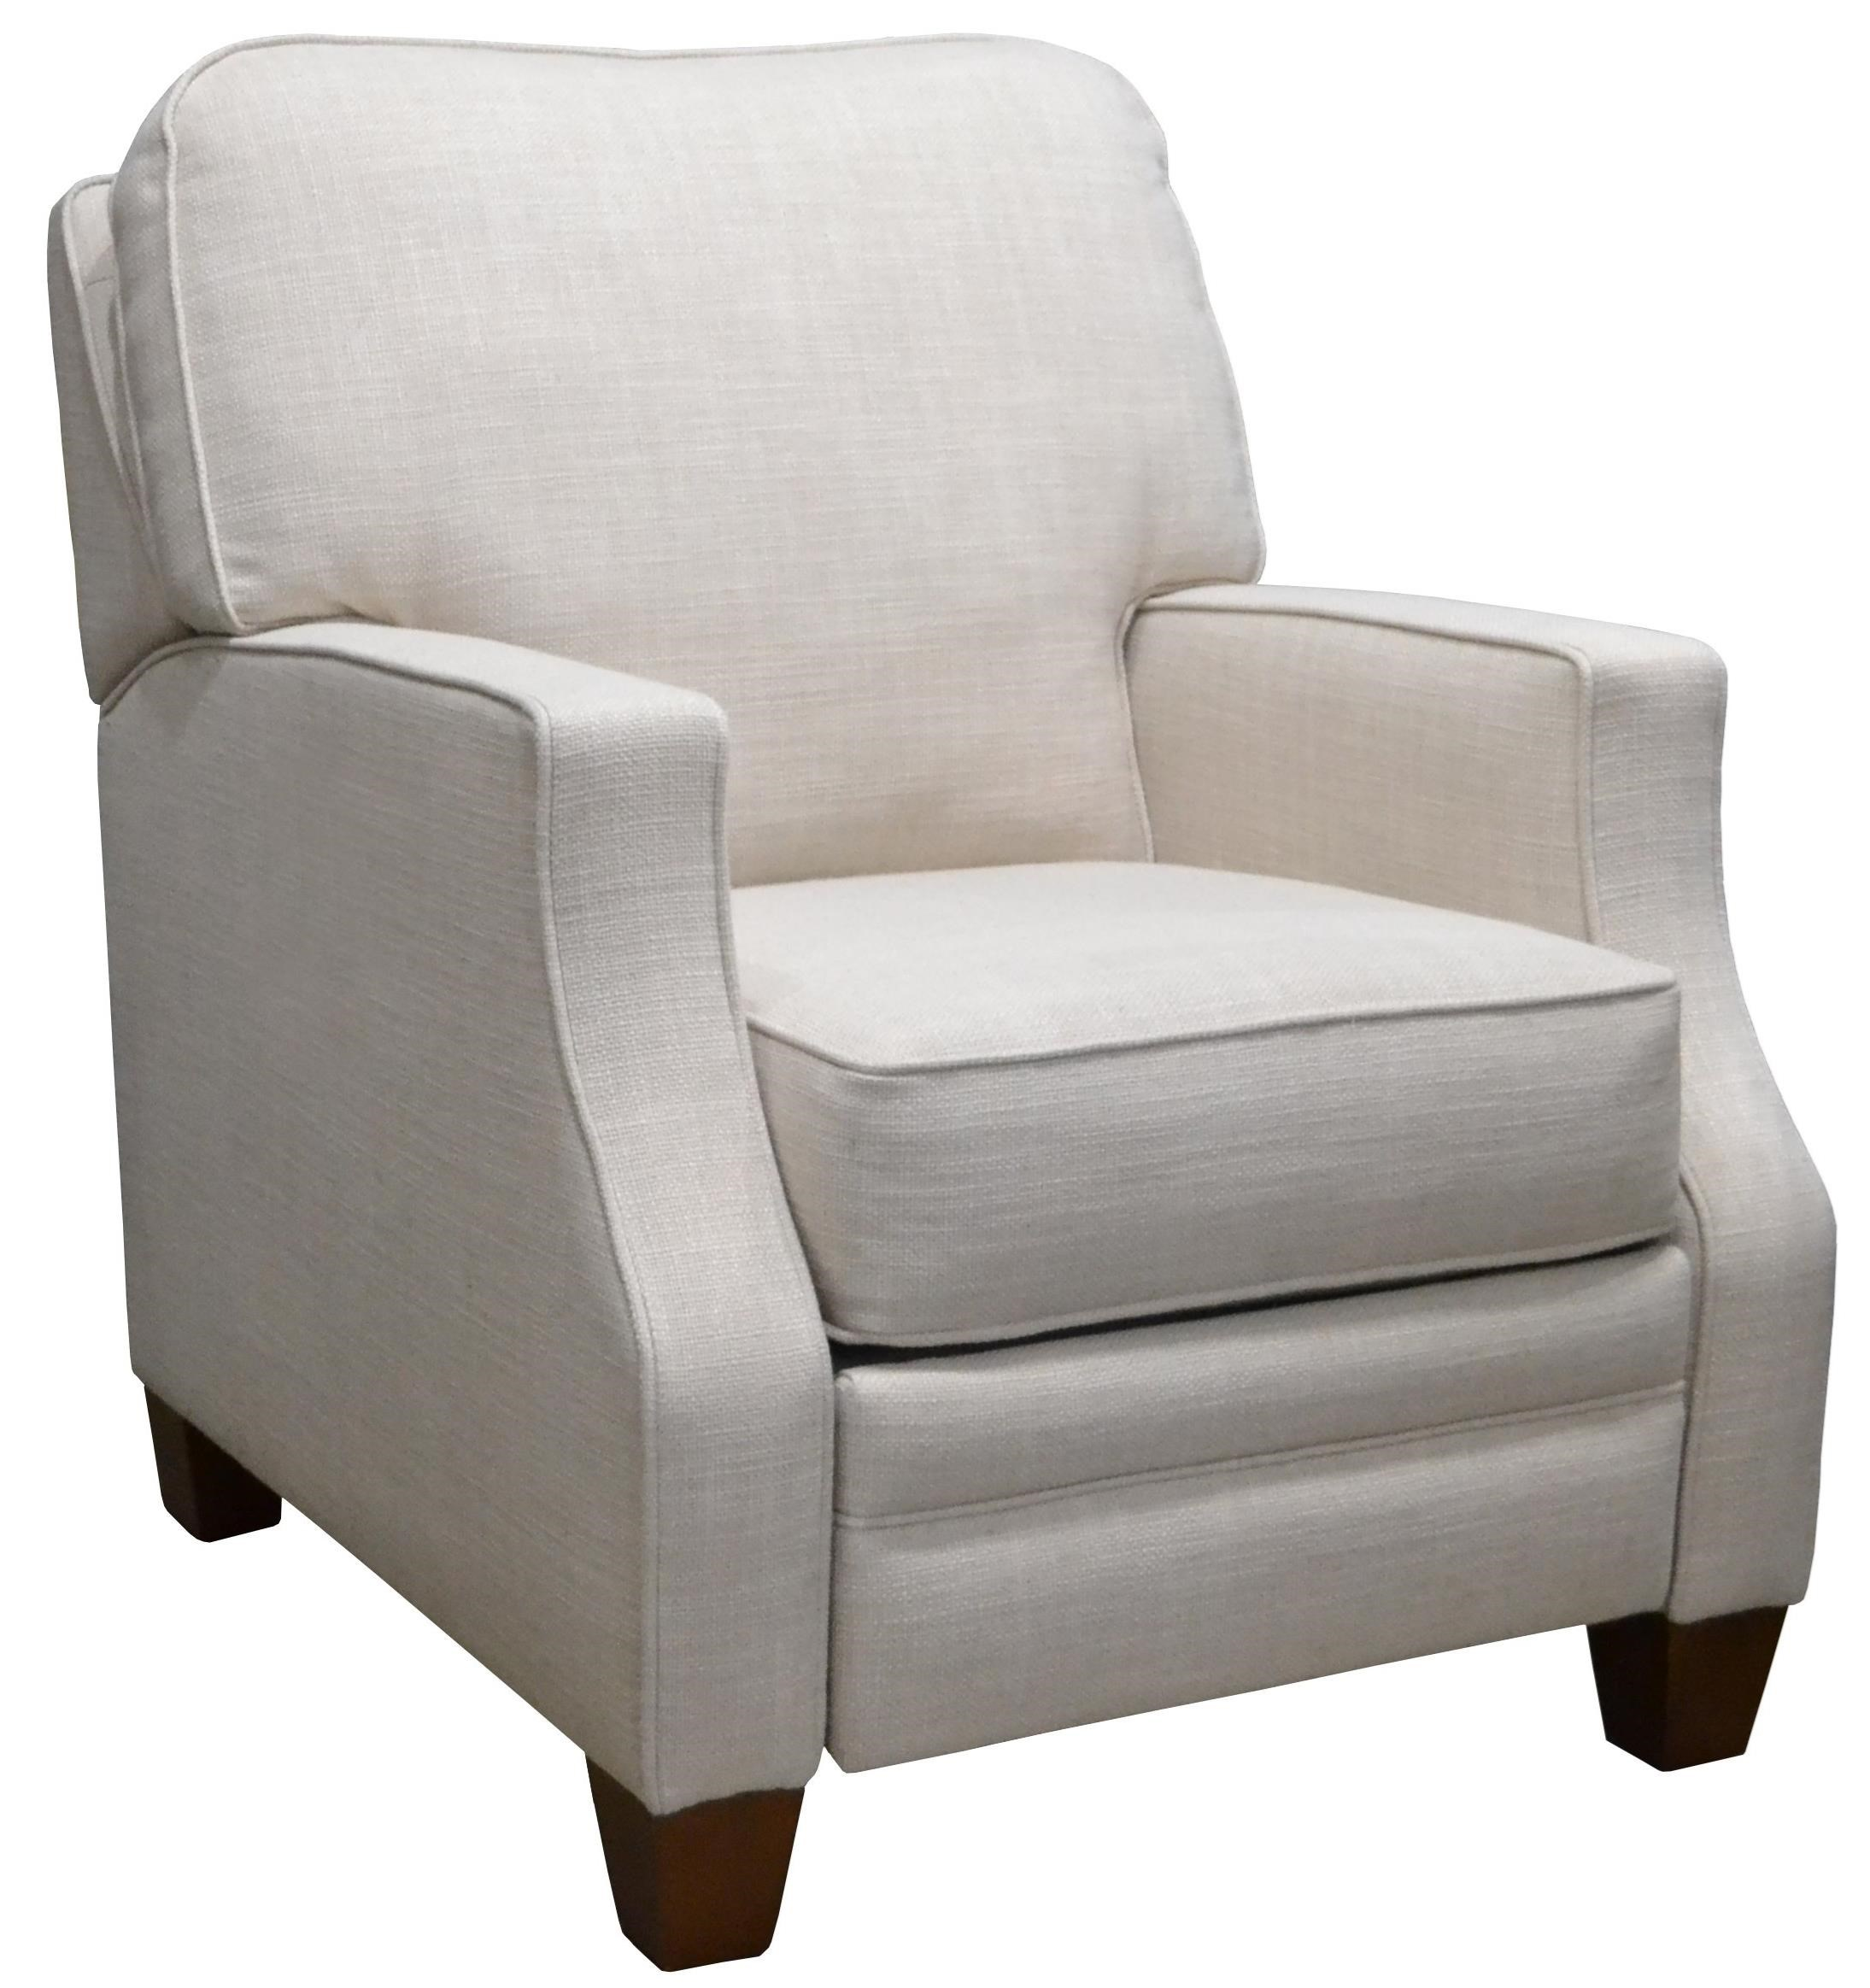 Stanton 358 Casual Push Back Recliner with Track Arms Rife s